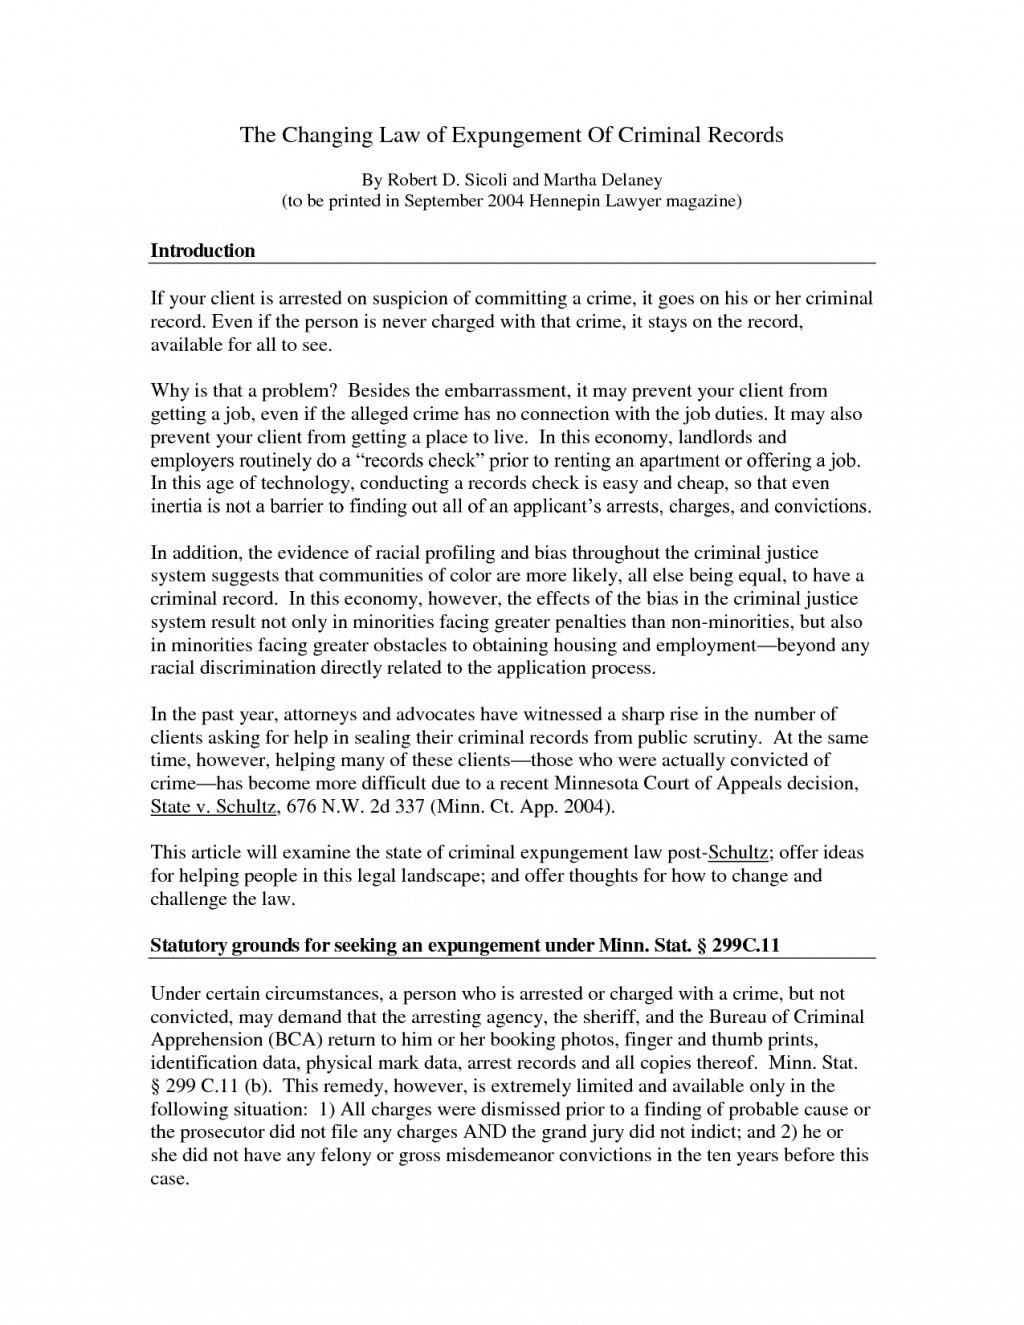 014 Essay Example Reference Letter For Friendartment Deloitteplication Character Template Buzzle Sample Format Black Paperartmentartmentartment Kitchen Design Your Own Dallas District Awful Argumentative Outline Middle School Apa Ap Argument Prompts Large